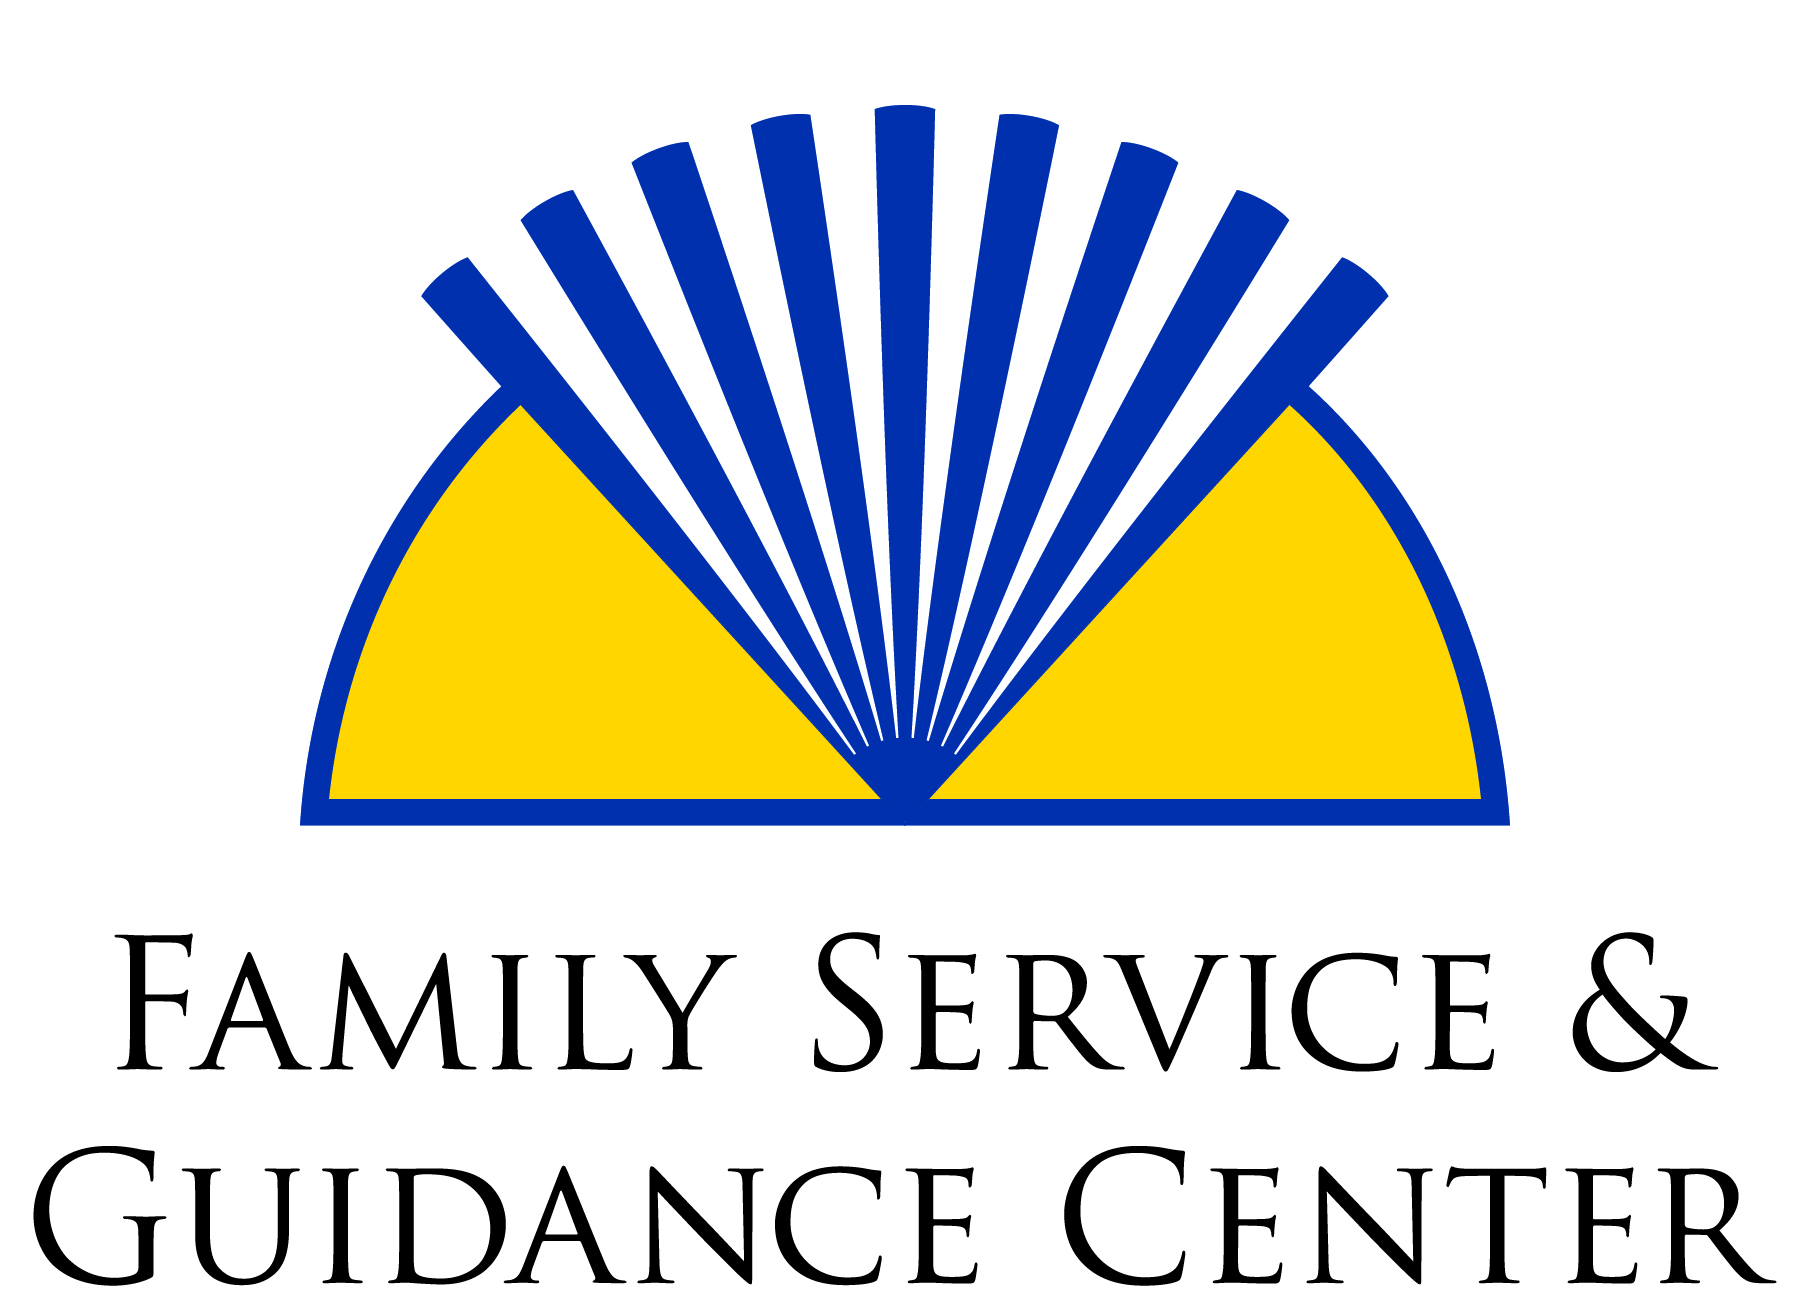 Family Service and Guidance Center